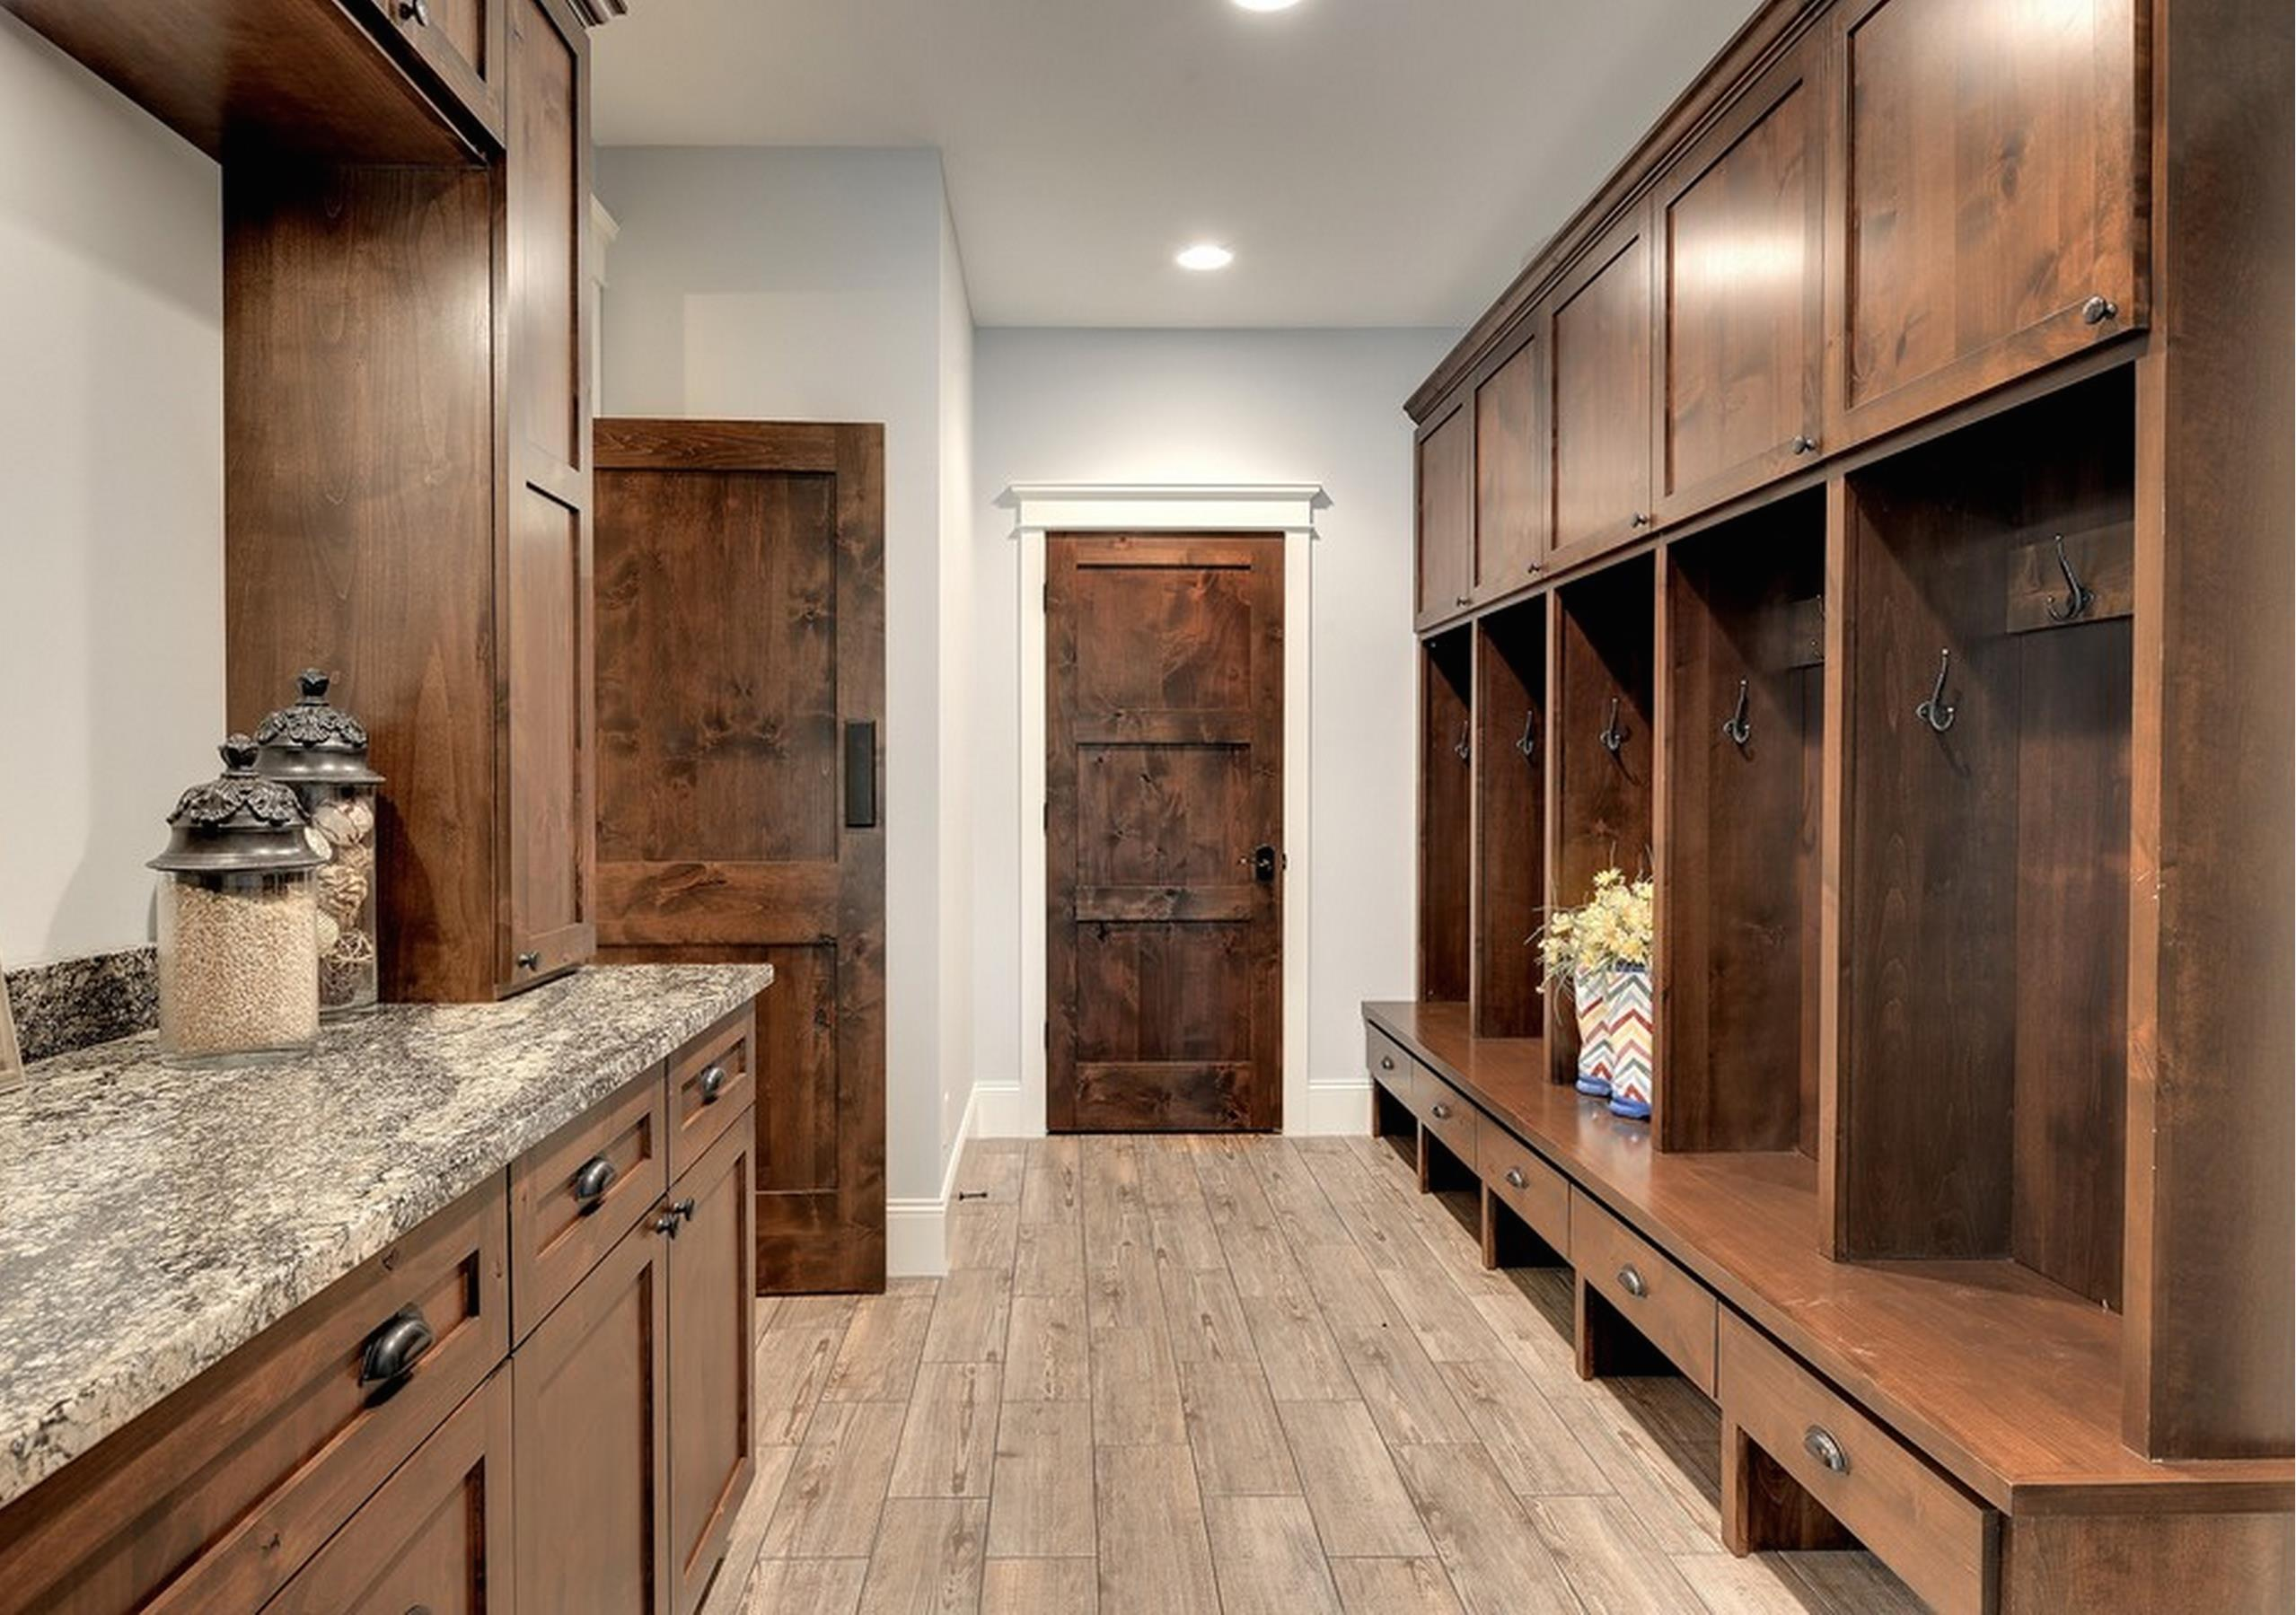 Knotty Alder Custom Doors And Cabinetry In The Mudroom Of A Minneapolis  House By Divine Custom